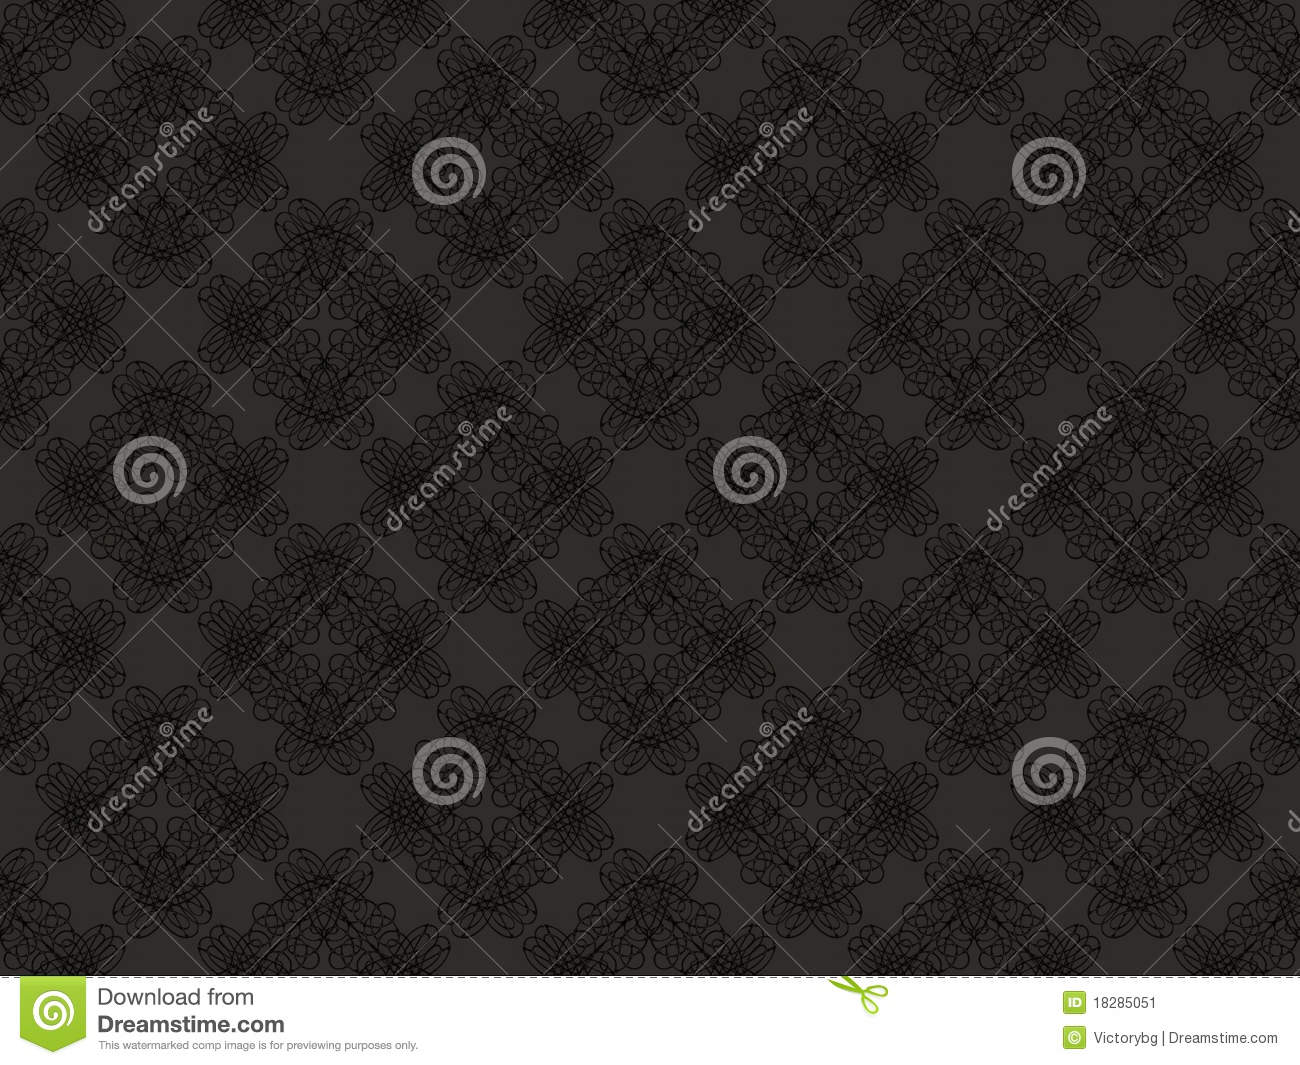 50+ Free Grey Seamless Patterns For Website Background Grey is a color between black & white. It symbolizes soberness, serenity, stillness and composure. Grey compliments the entire look and stature. When it comes to apply a Seamless pattern for website background; Grey is most probably an utmost choice of a website designer.